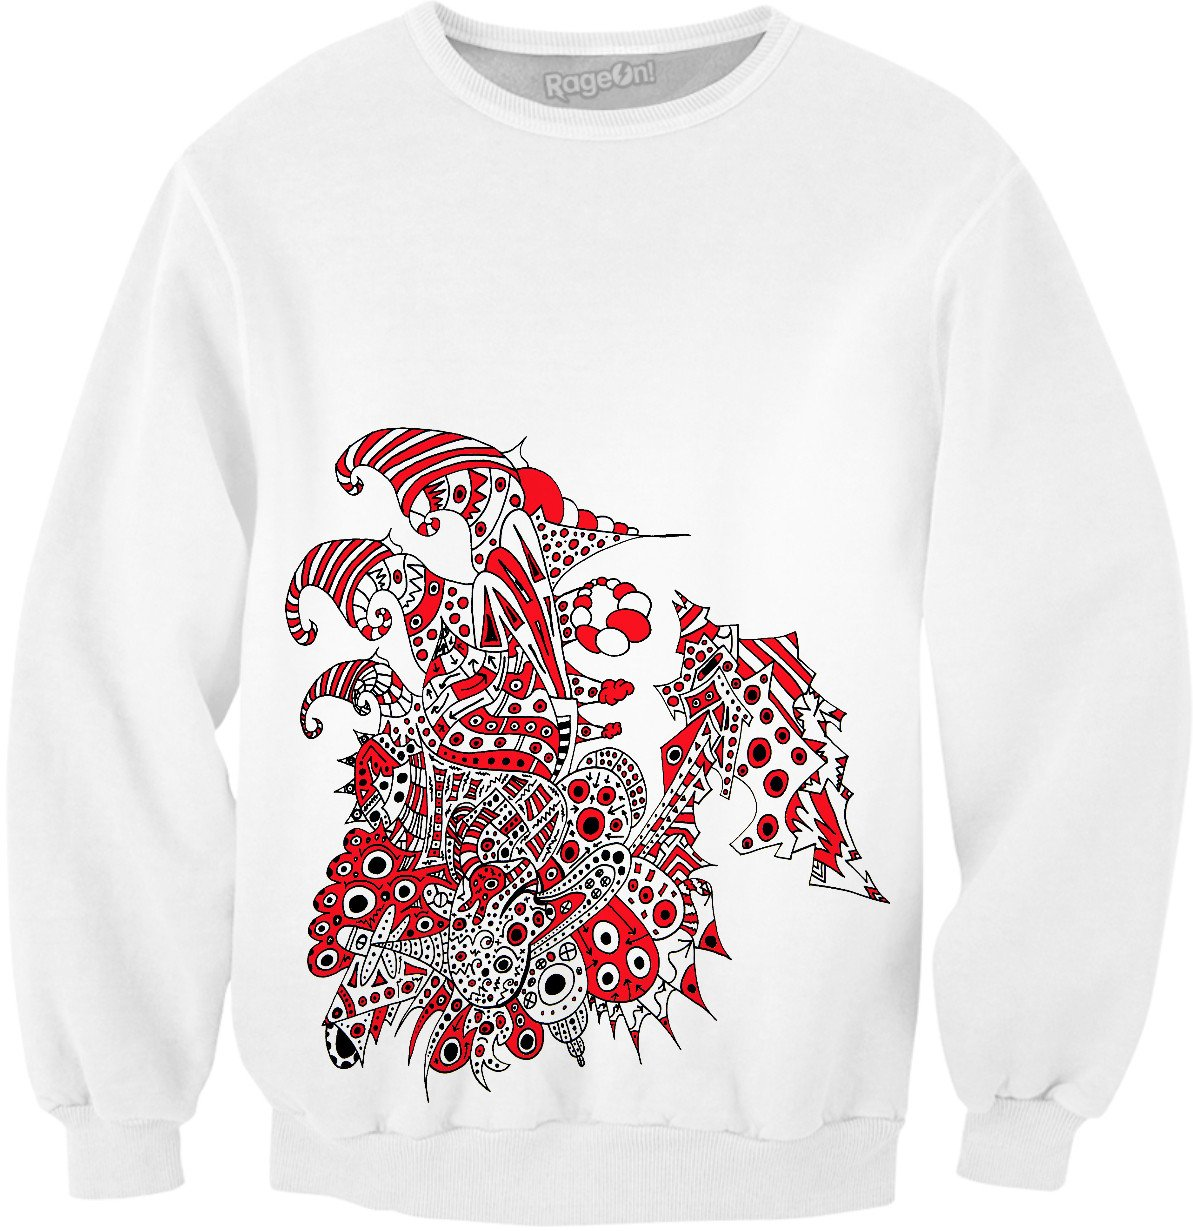 Alien 57 White & Red Sweatshirt - TShirtsRUS.co